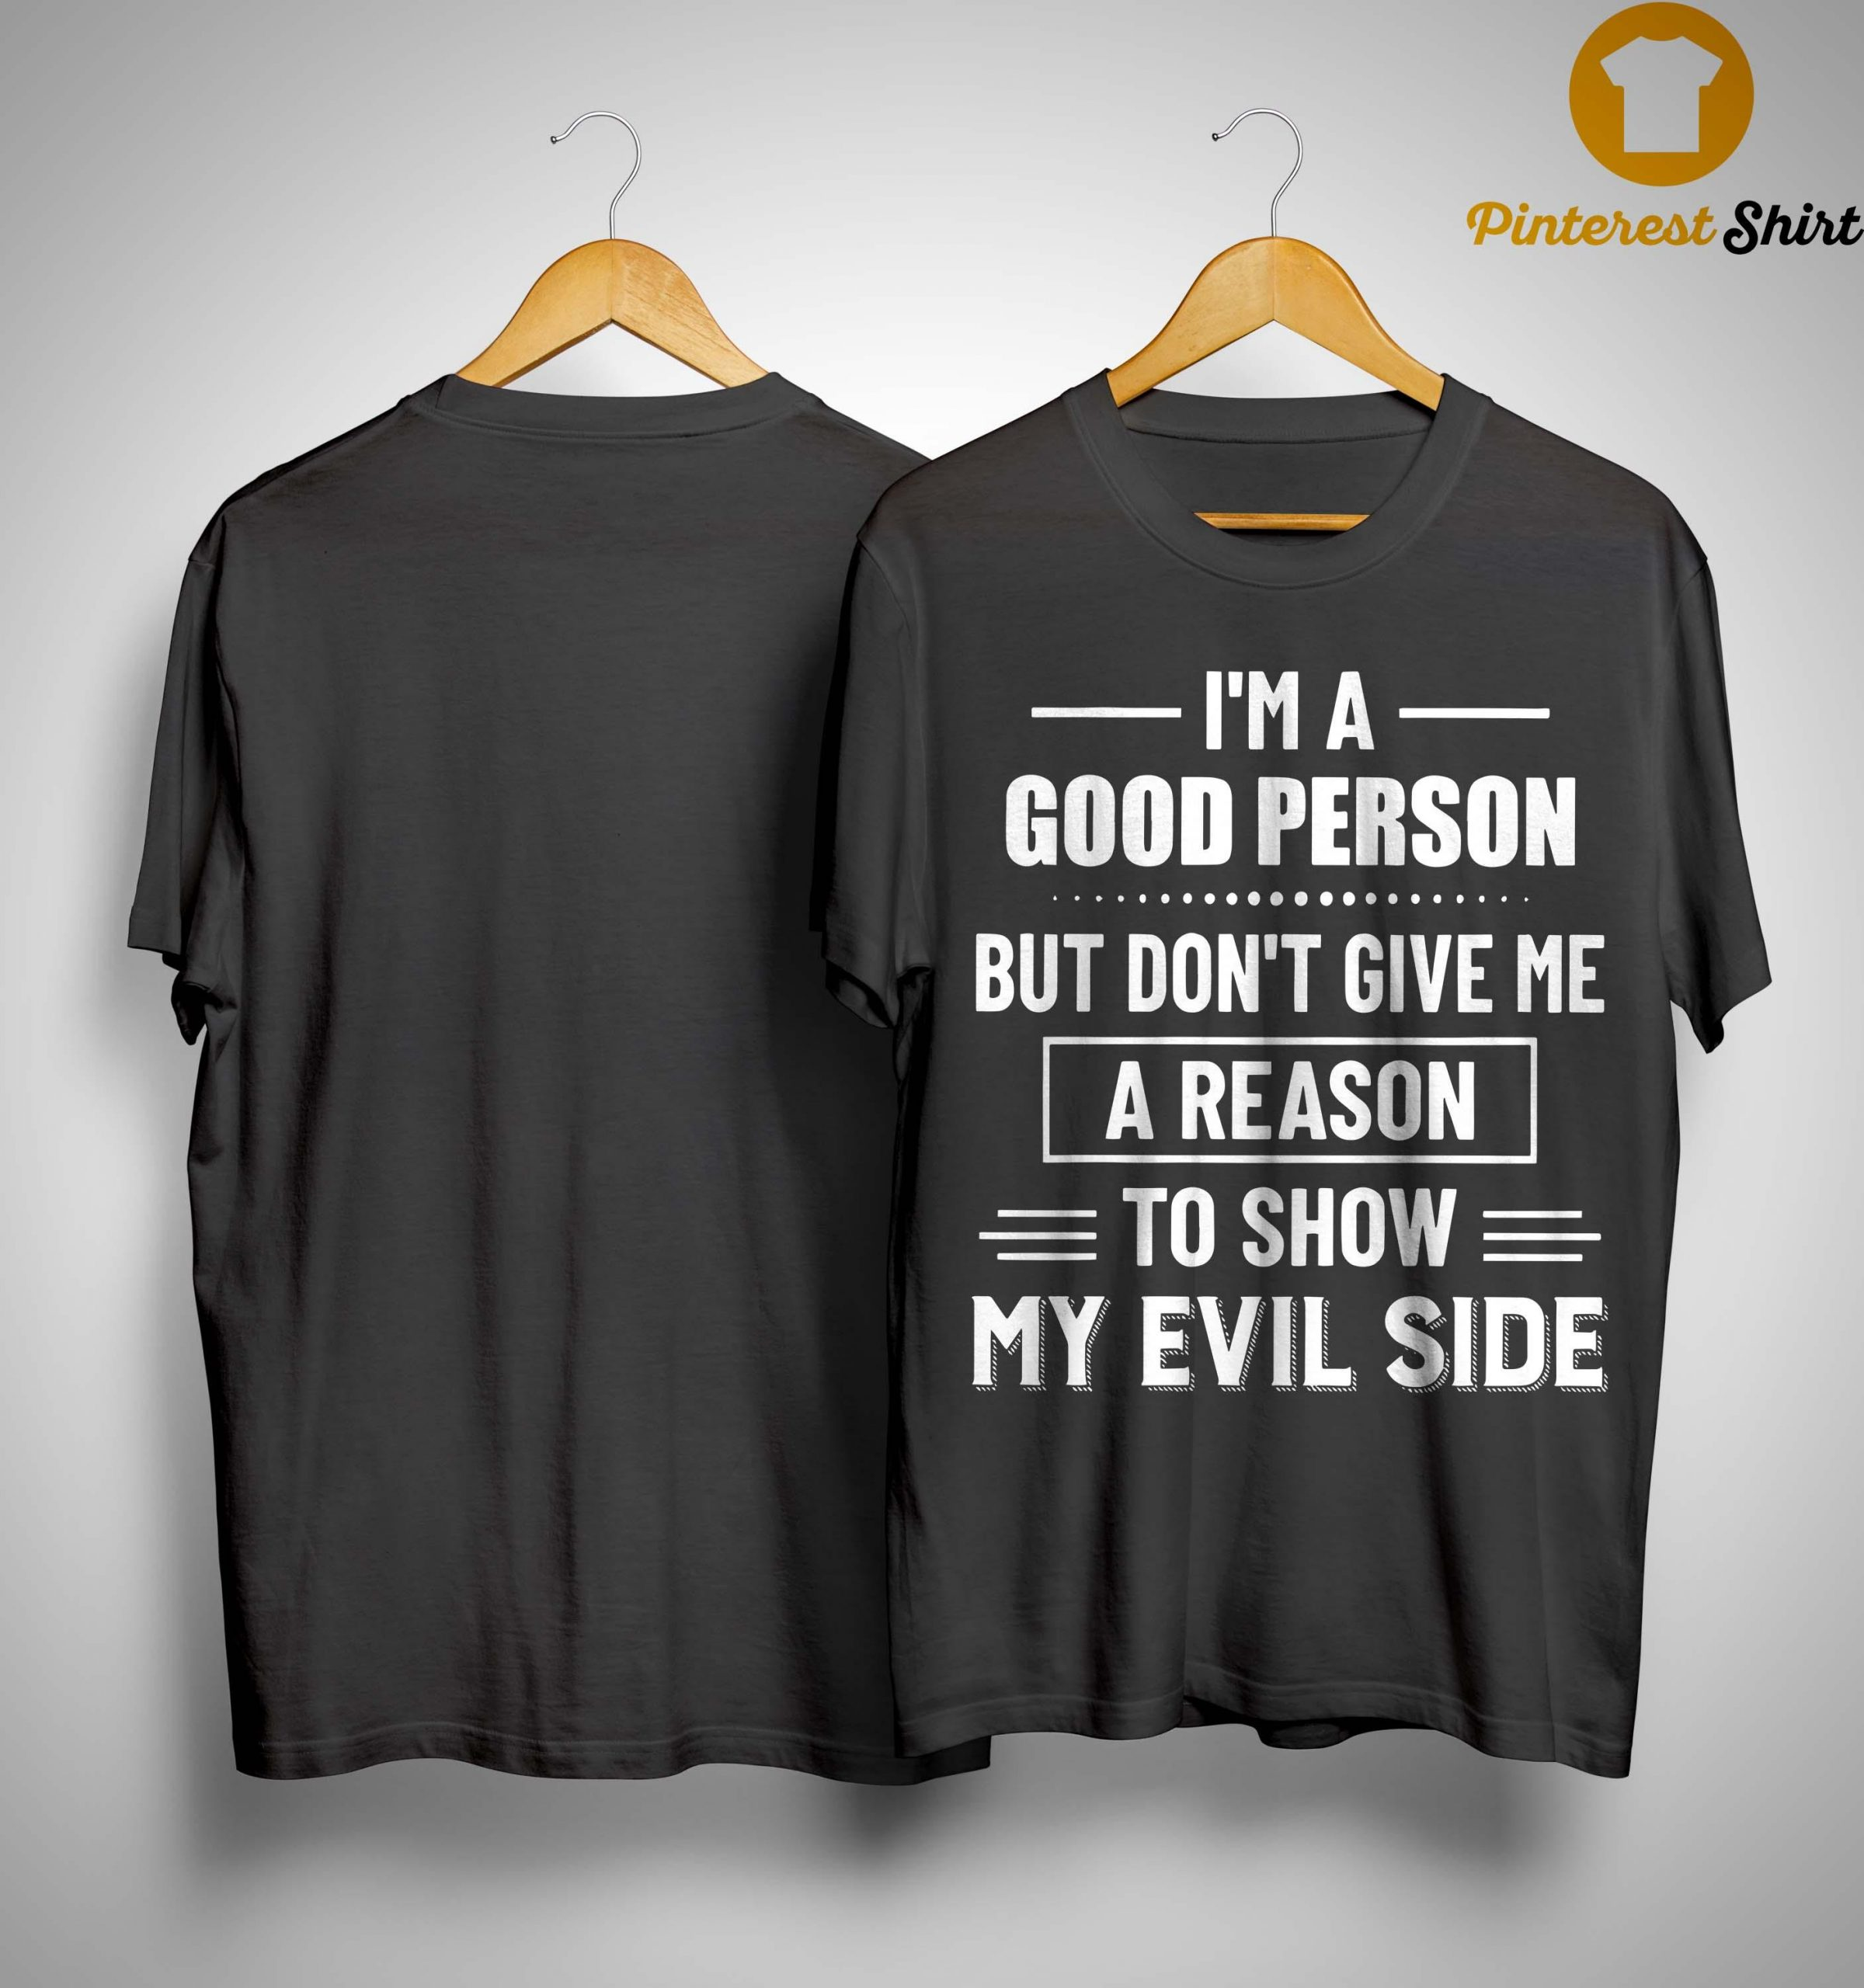 I'm A Good Person But Don't Give Me A Reason To Show My Evil Side Shirt